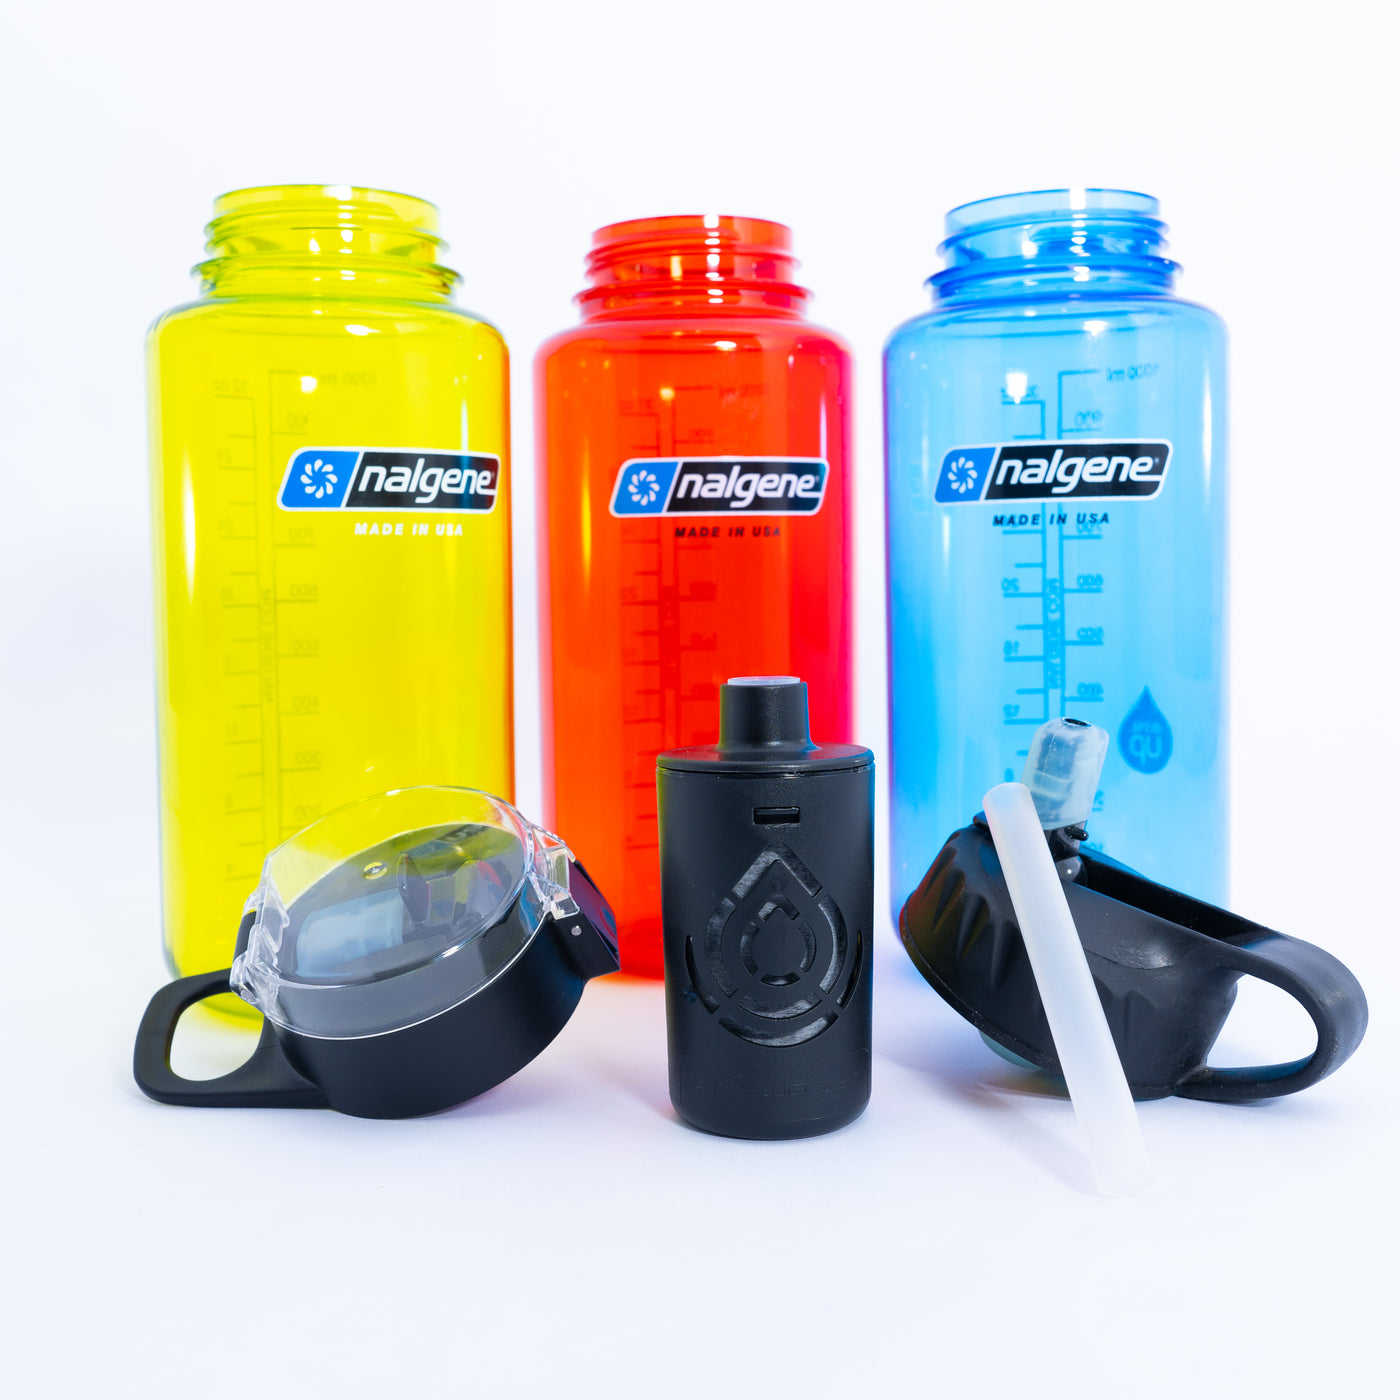 dfec0cce4d THE ANSWER | NALGENE Compatible Water Bottle Filter System